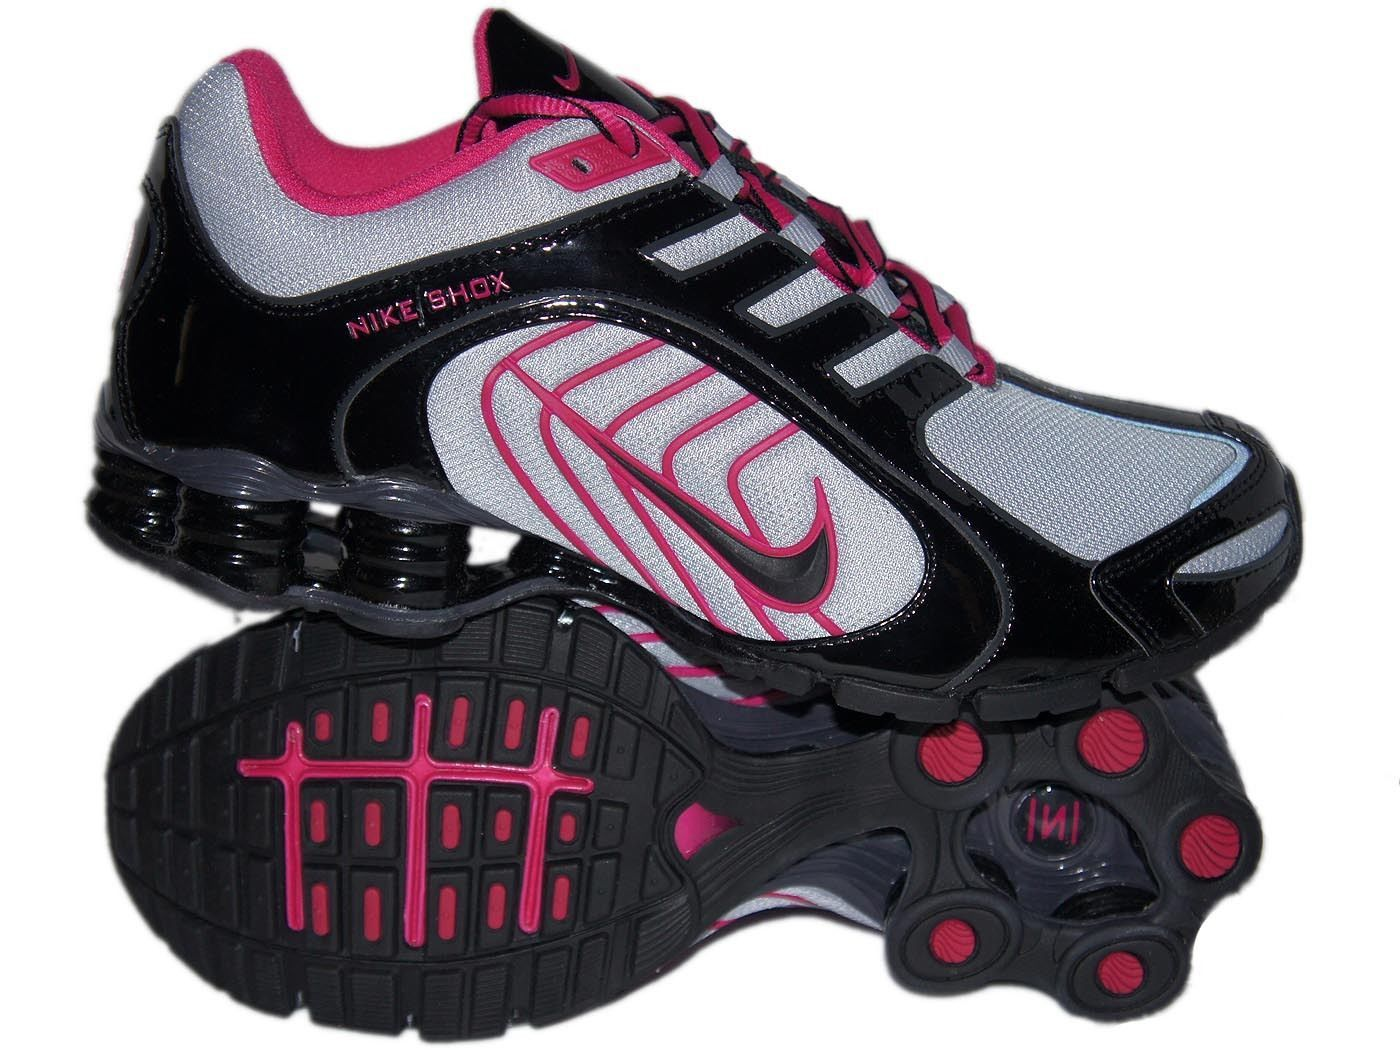 56d959e72f5 Women s nike shox navina size 7.5 - grey black fireberry running ...